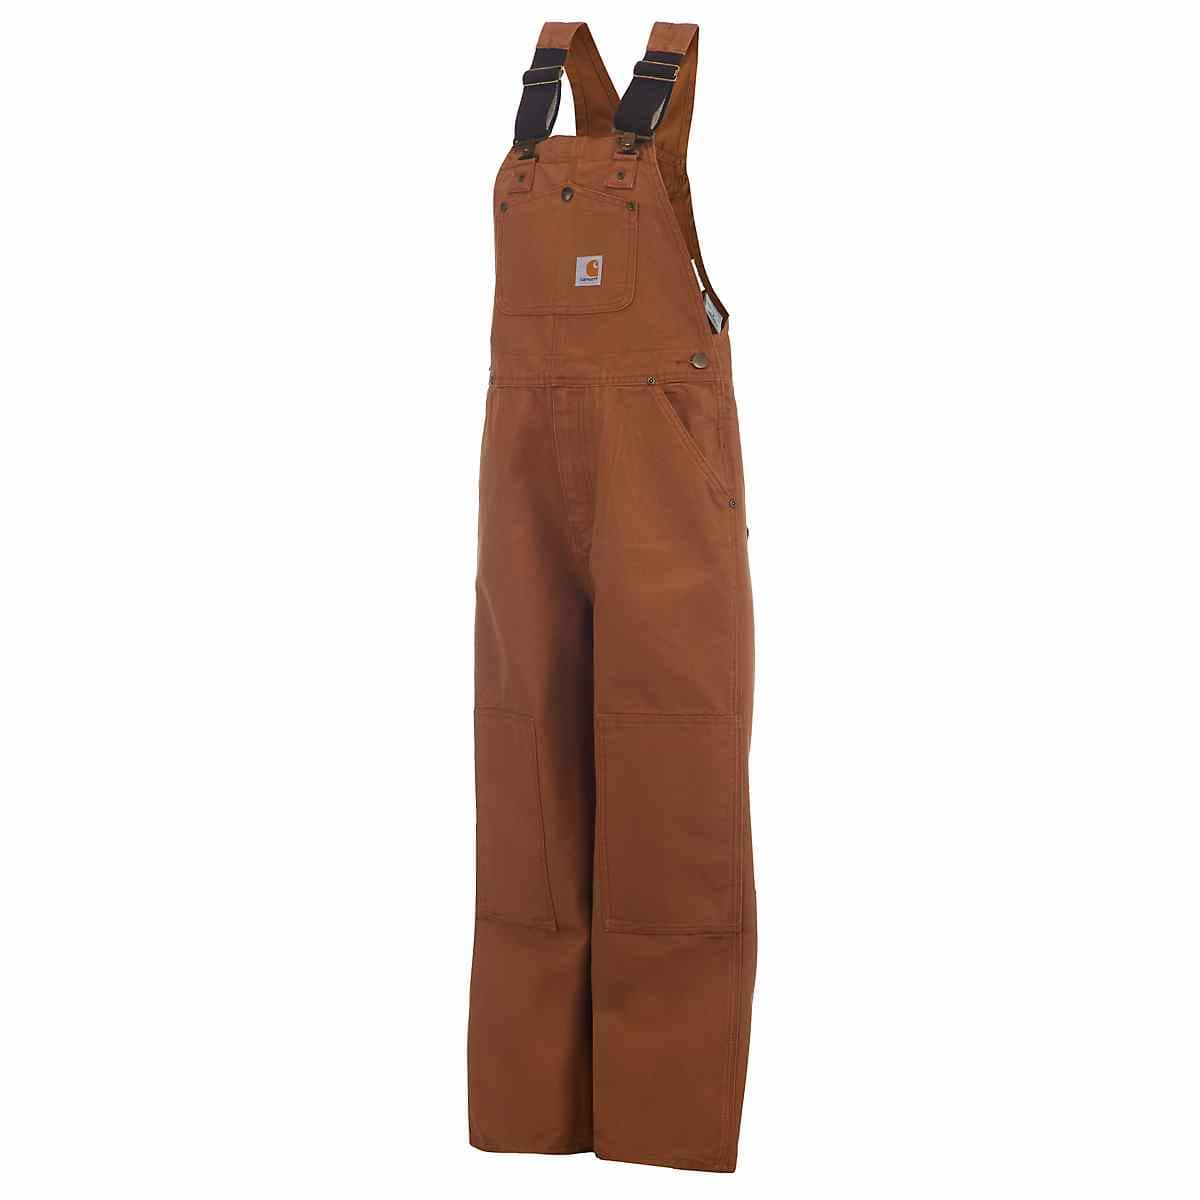 Academy Addt'l 25% Off Apparel: Carhartt Boys' Duck Washed Bib Overall $7.50, Skechers Women's Jogger or Walk Pants $15, More + free ship on $25+